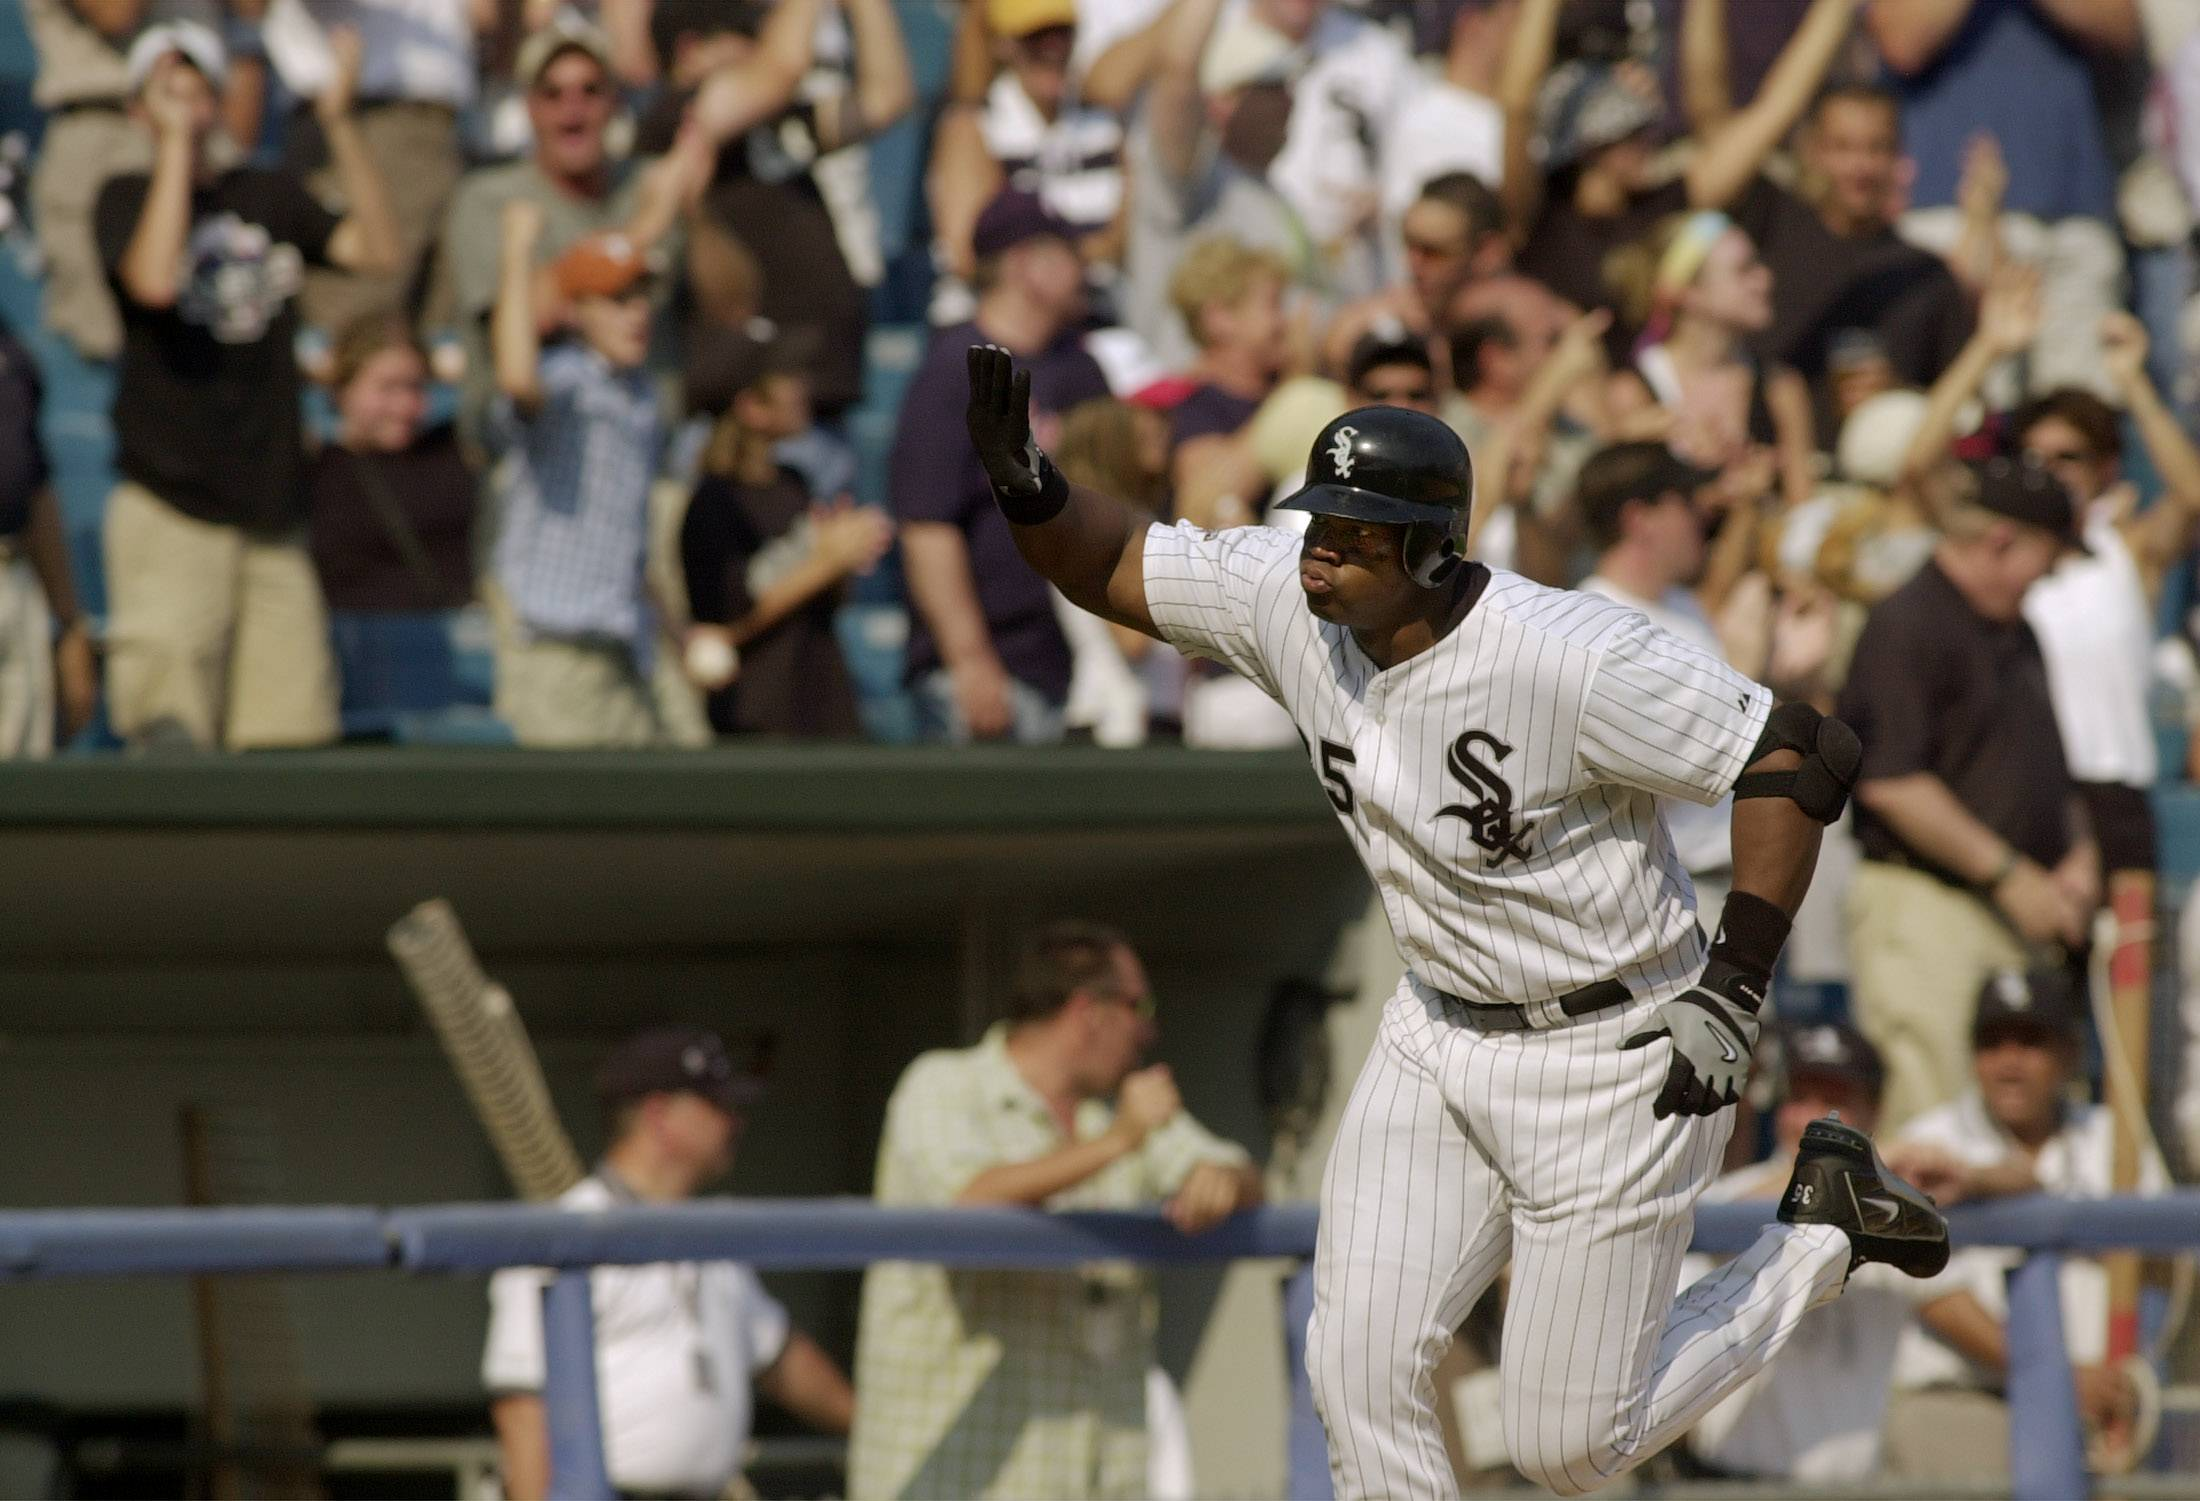 Frank Thomas rounds third base after a 3-run homer in 2003 against Cleveland.